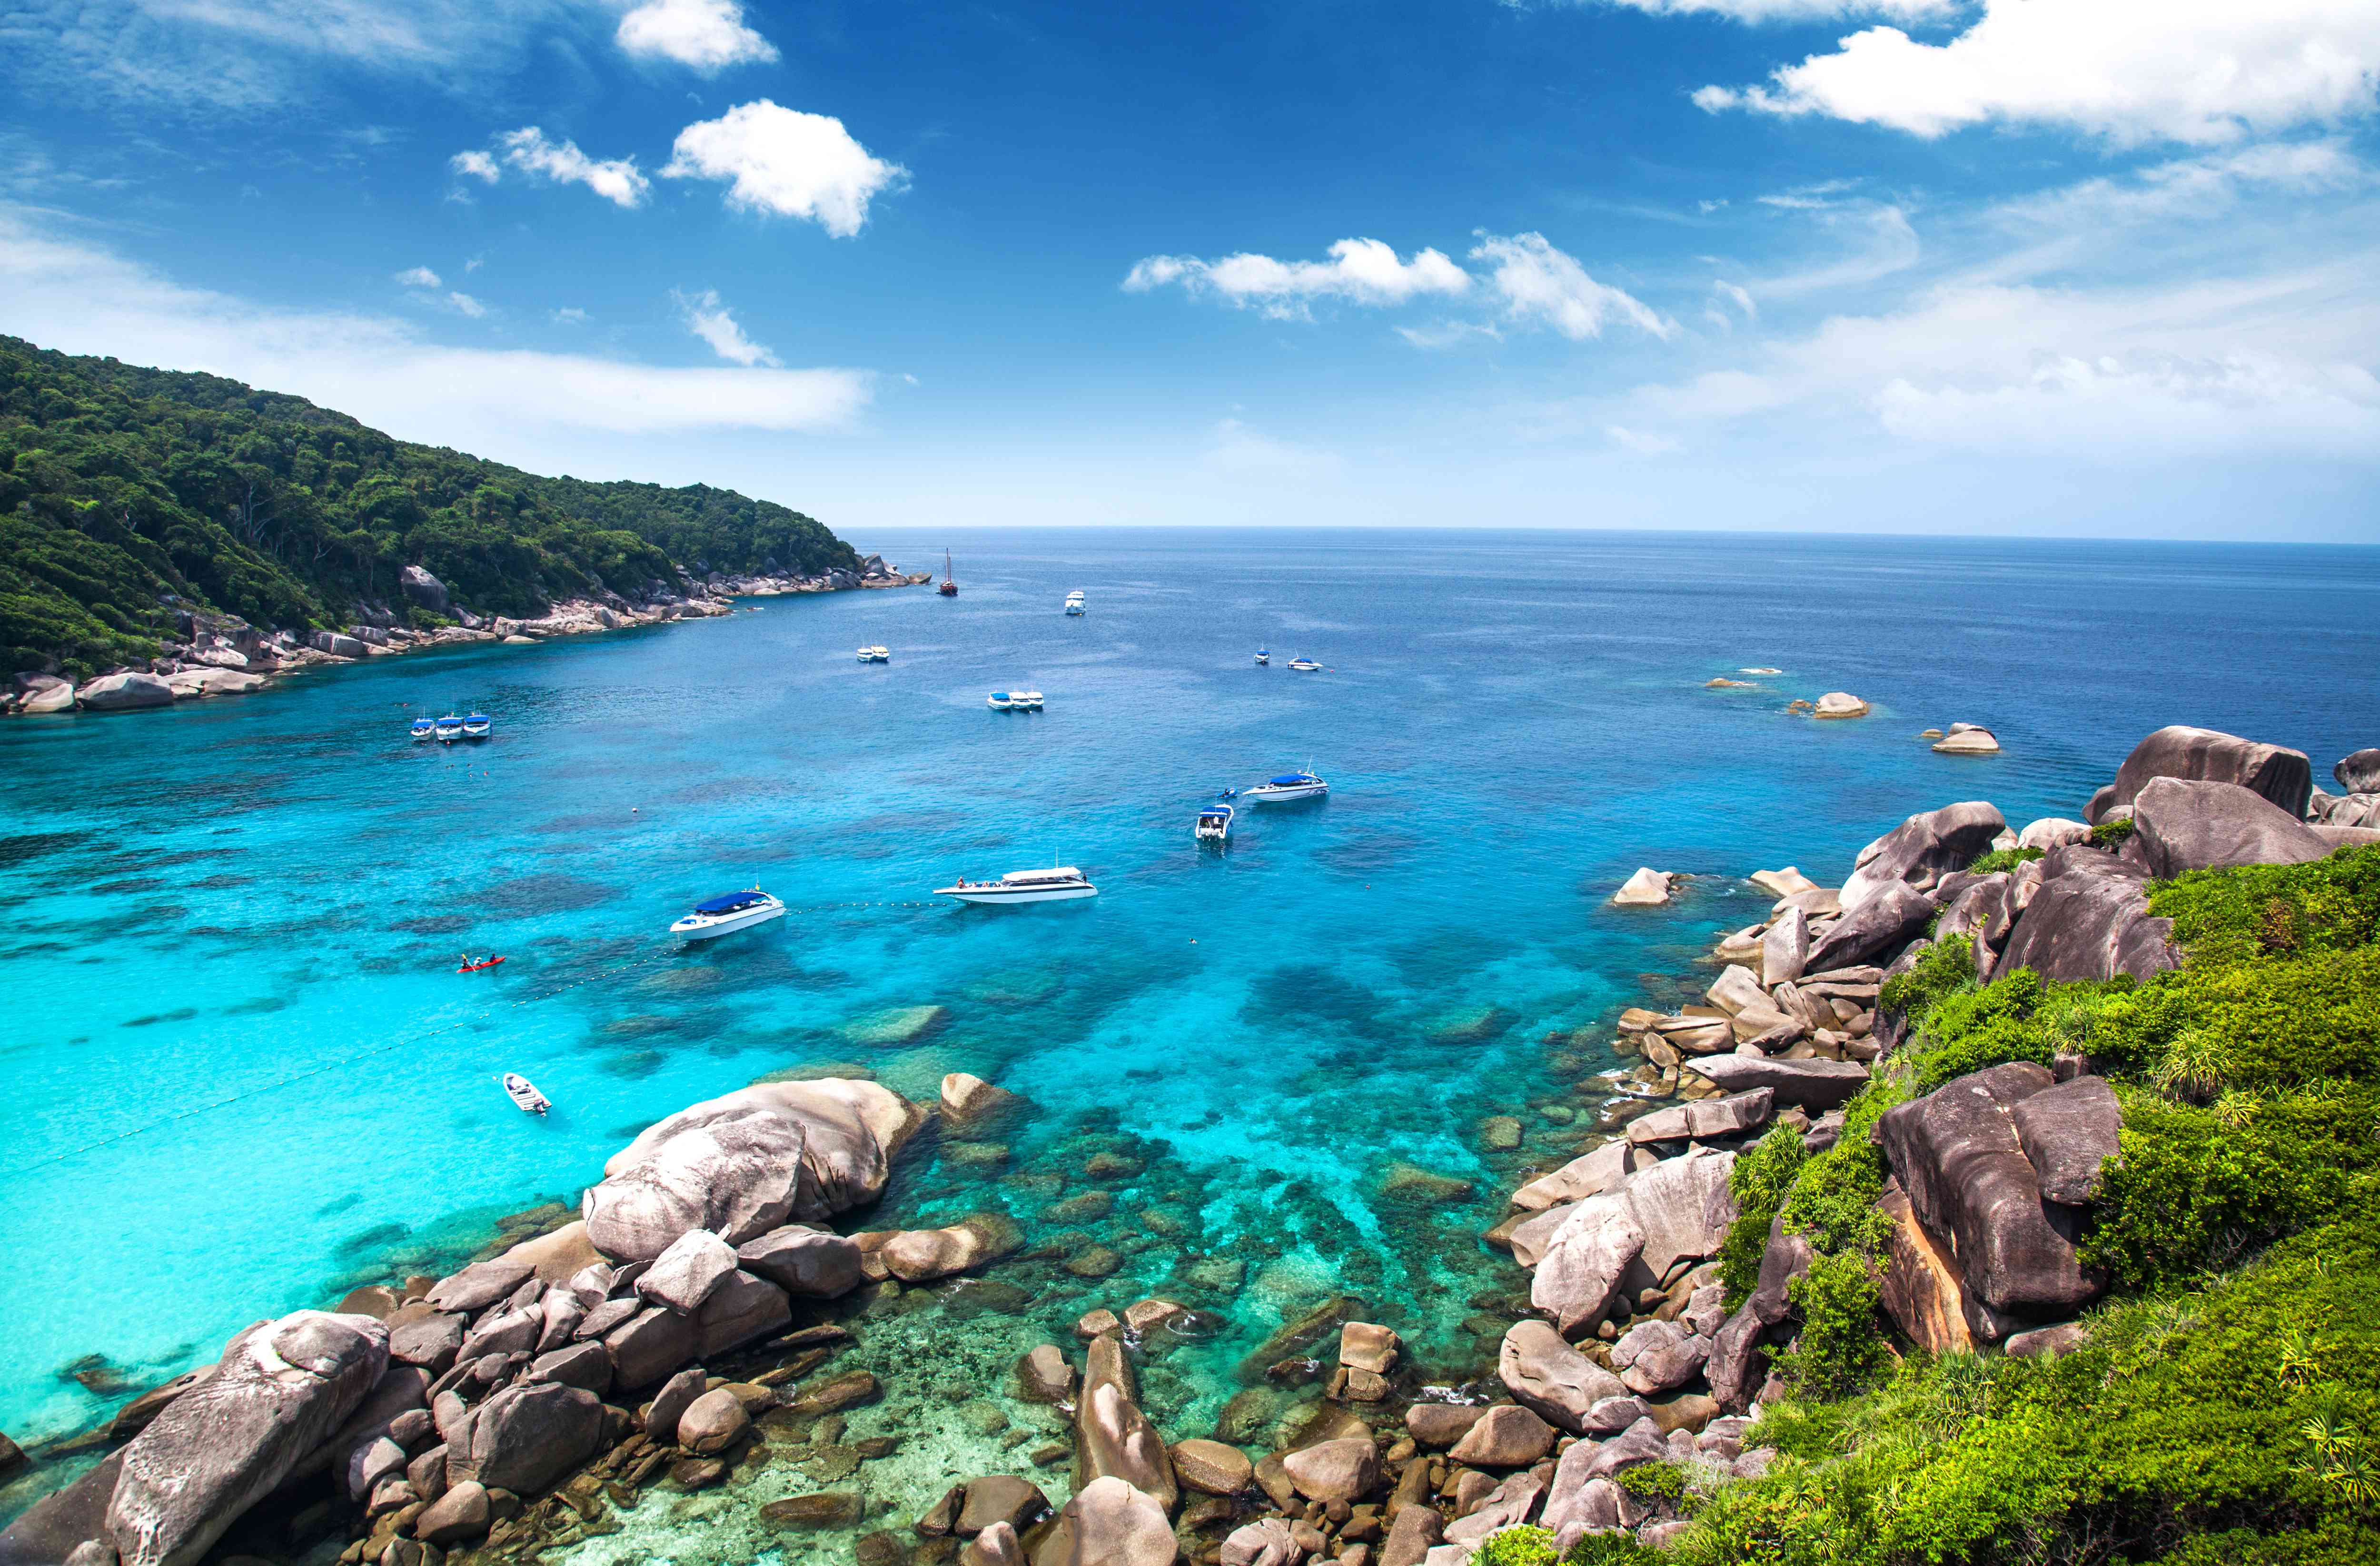 Diving boats in the Similan Islands, Thailand